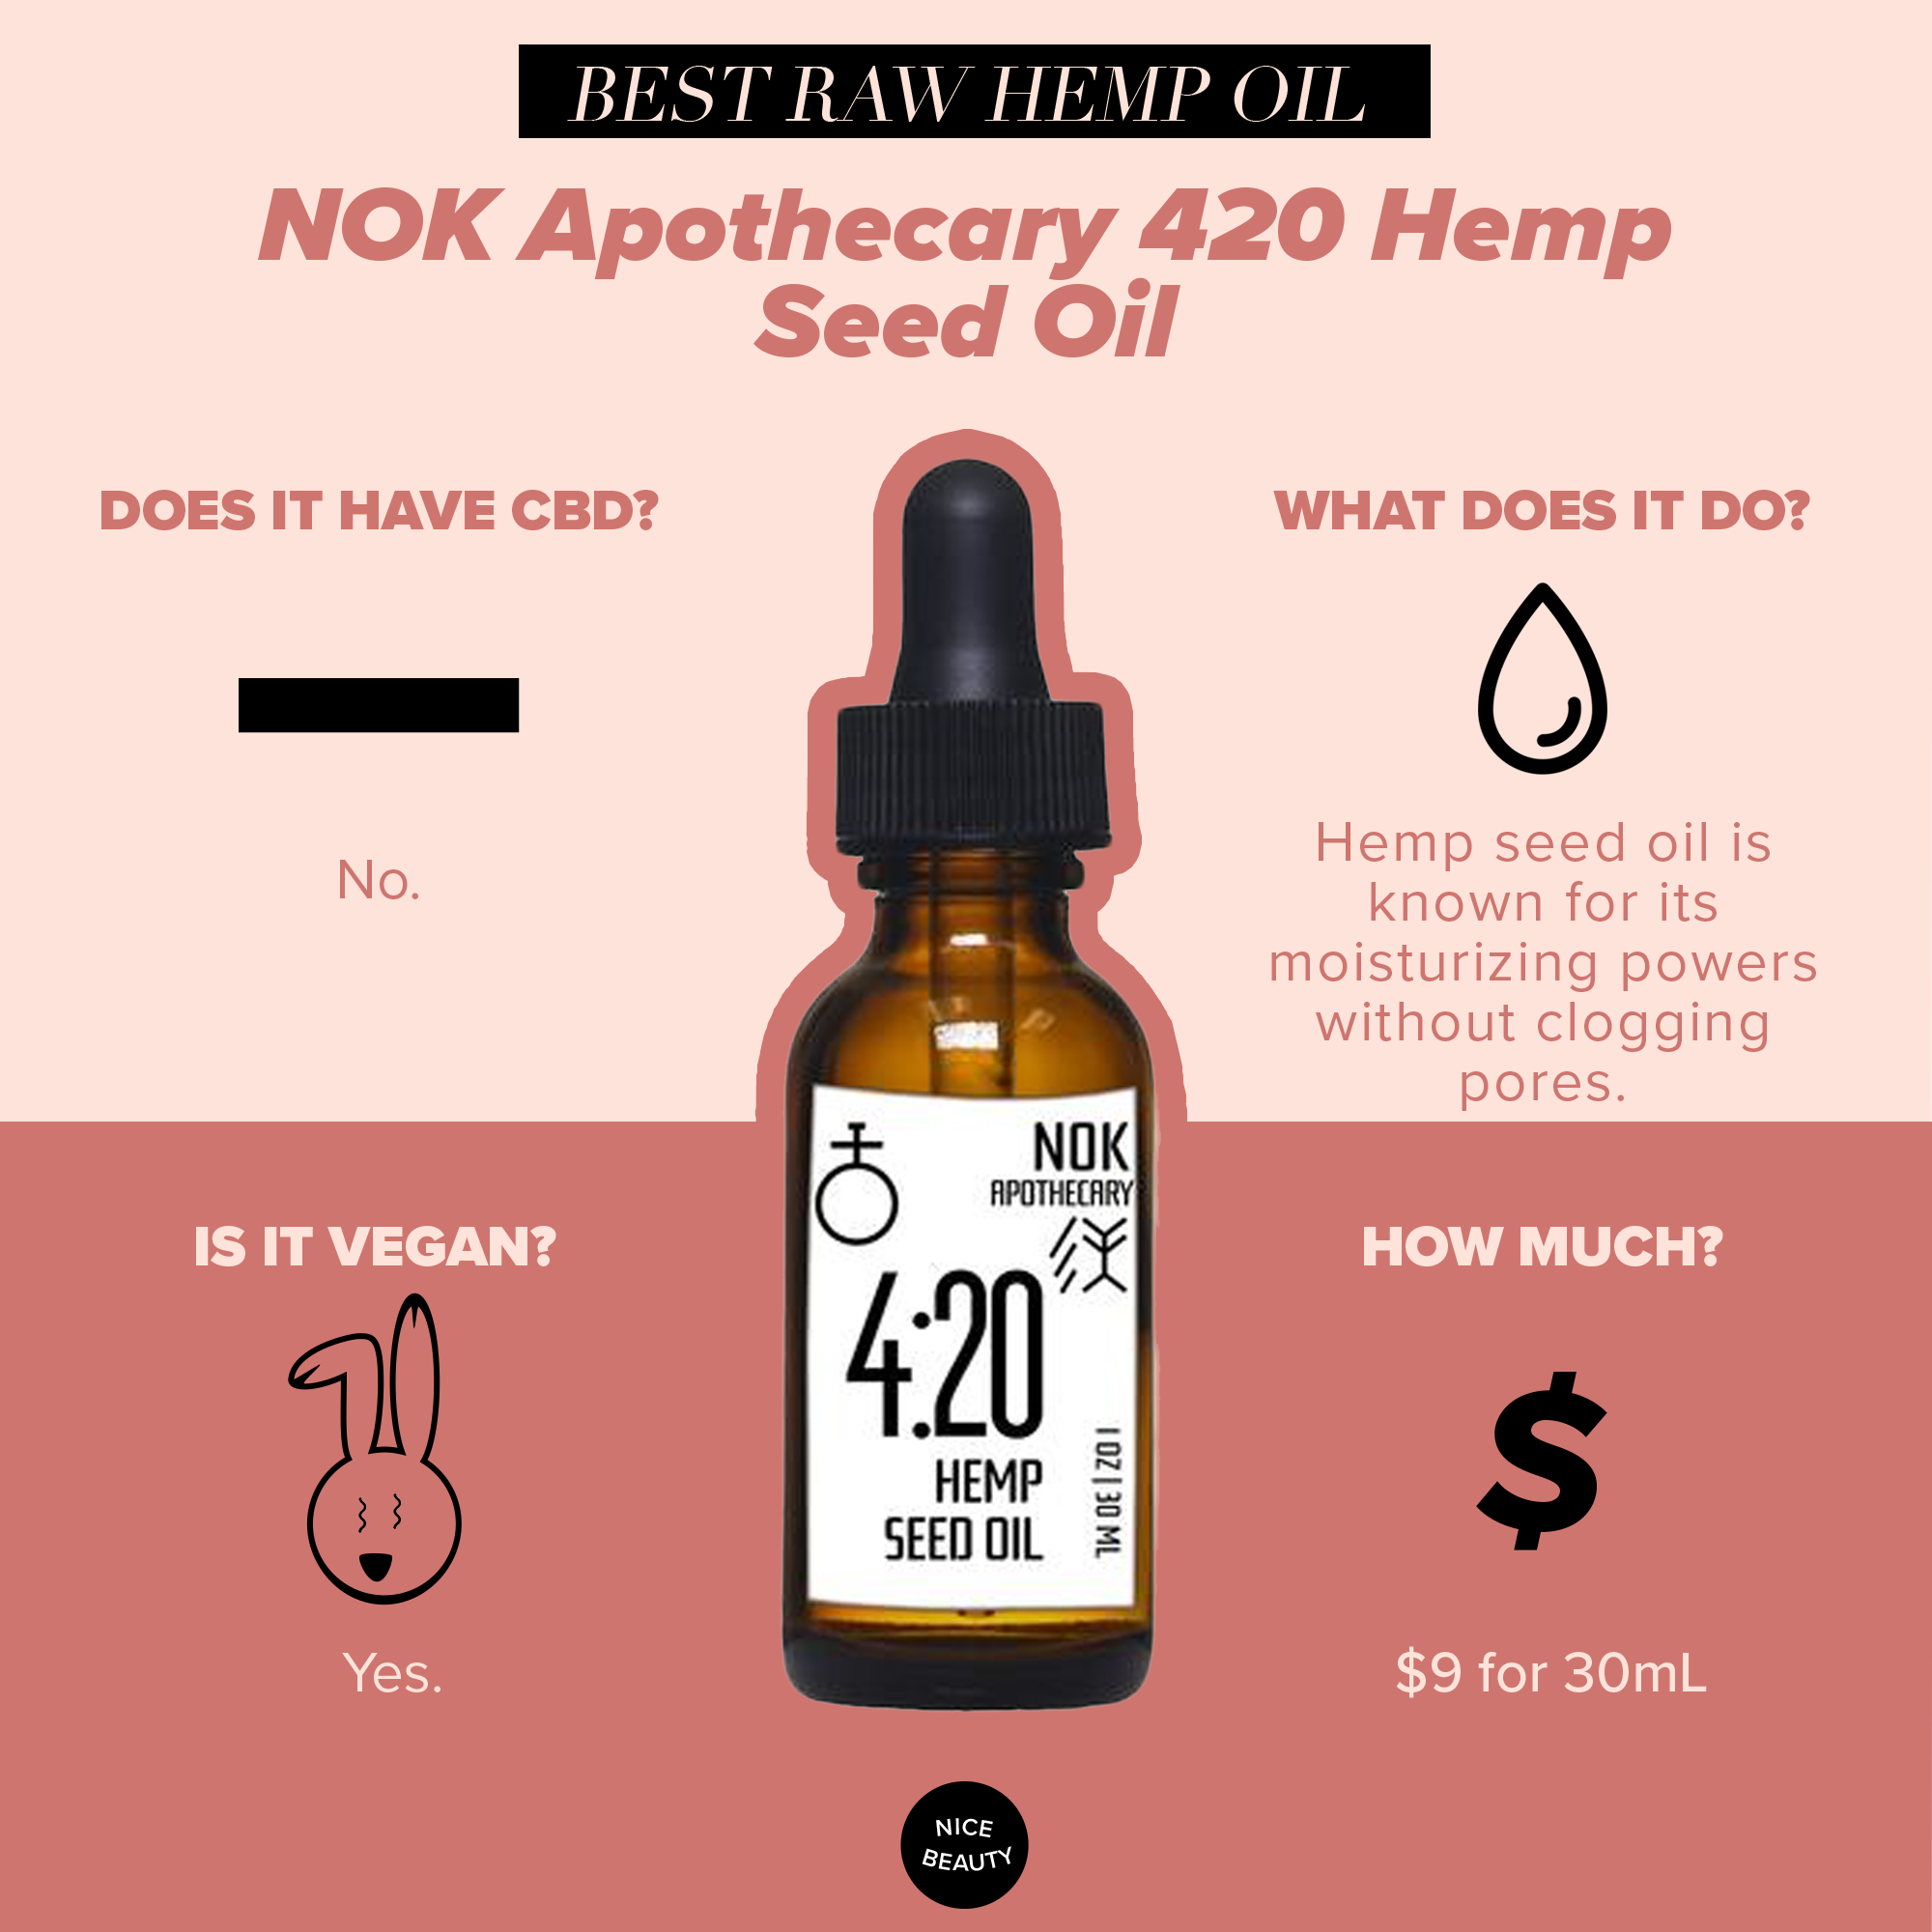 NOK Apothecary 420 Hemp Seed Oil - While we're big fans of CBD for your face, hemp seed oil is equally as good for your pores. NOK Apothecary sells a great virgin cold-pressed organic hemp seed face oil for $9. Remember, cannabis sativa seed oil and hemp seed oil are not the same thing, both don't have CBD but they are both great to moisturize and revive your face.